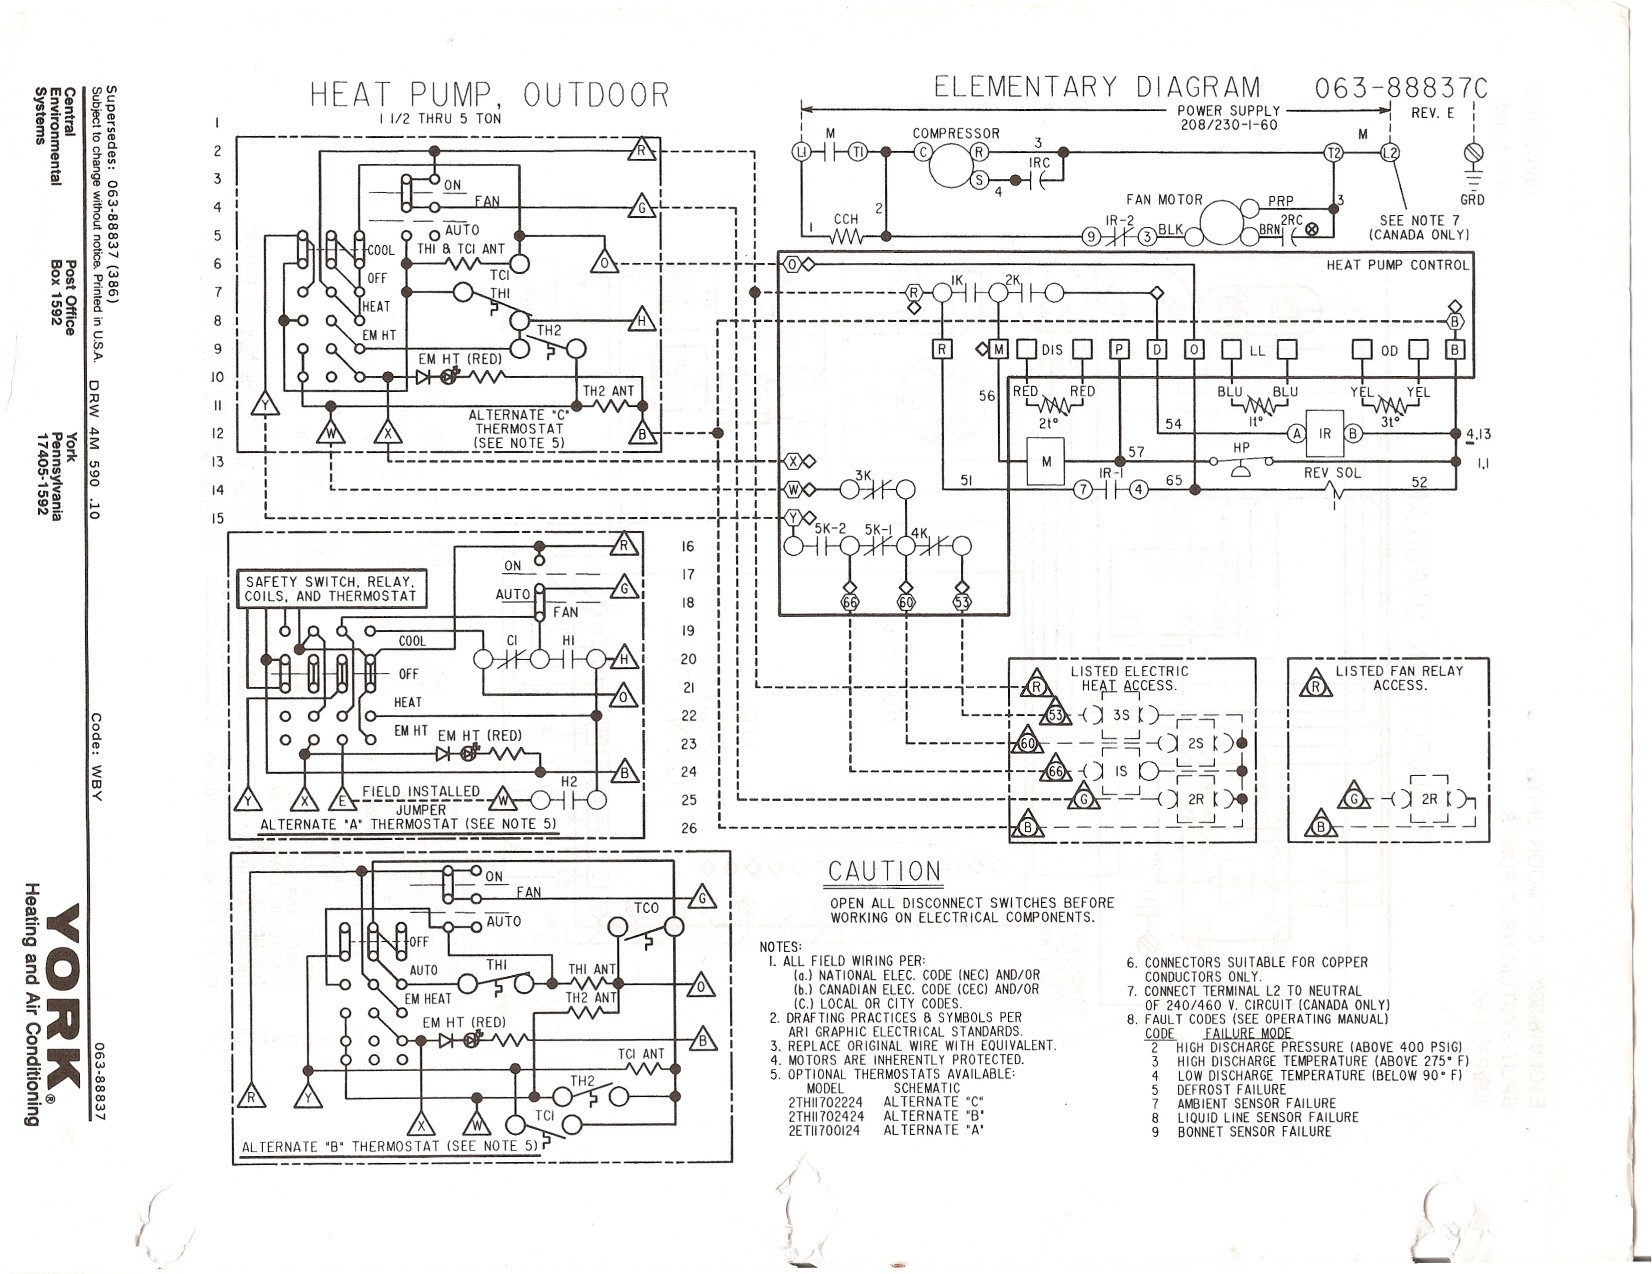 Heil Heat Pump Wiring Diagram